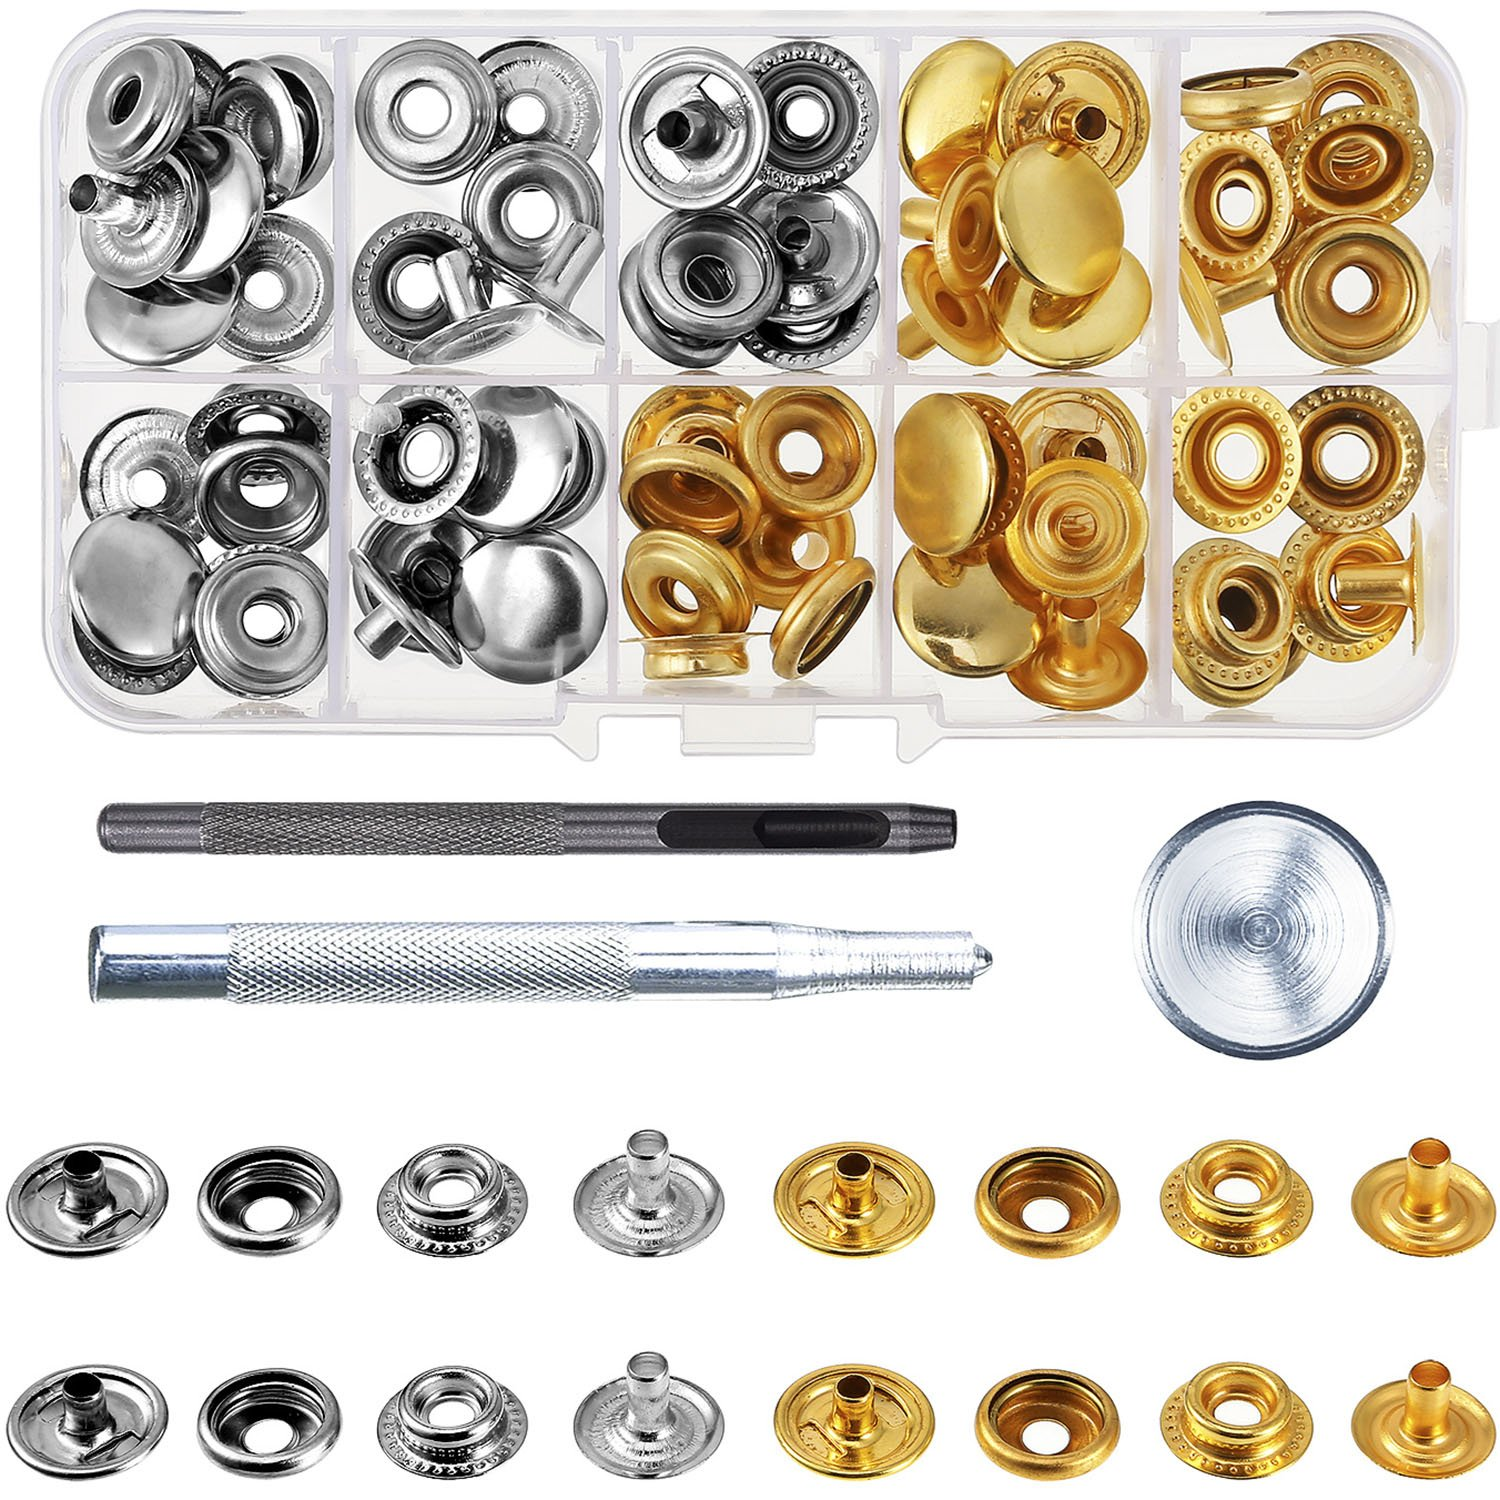 20 Set Press Studs Snap Fasteners No Sewing Clothing Snaps Button with  Fixing Tool for Fabric, Leather Craft (15 mm)